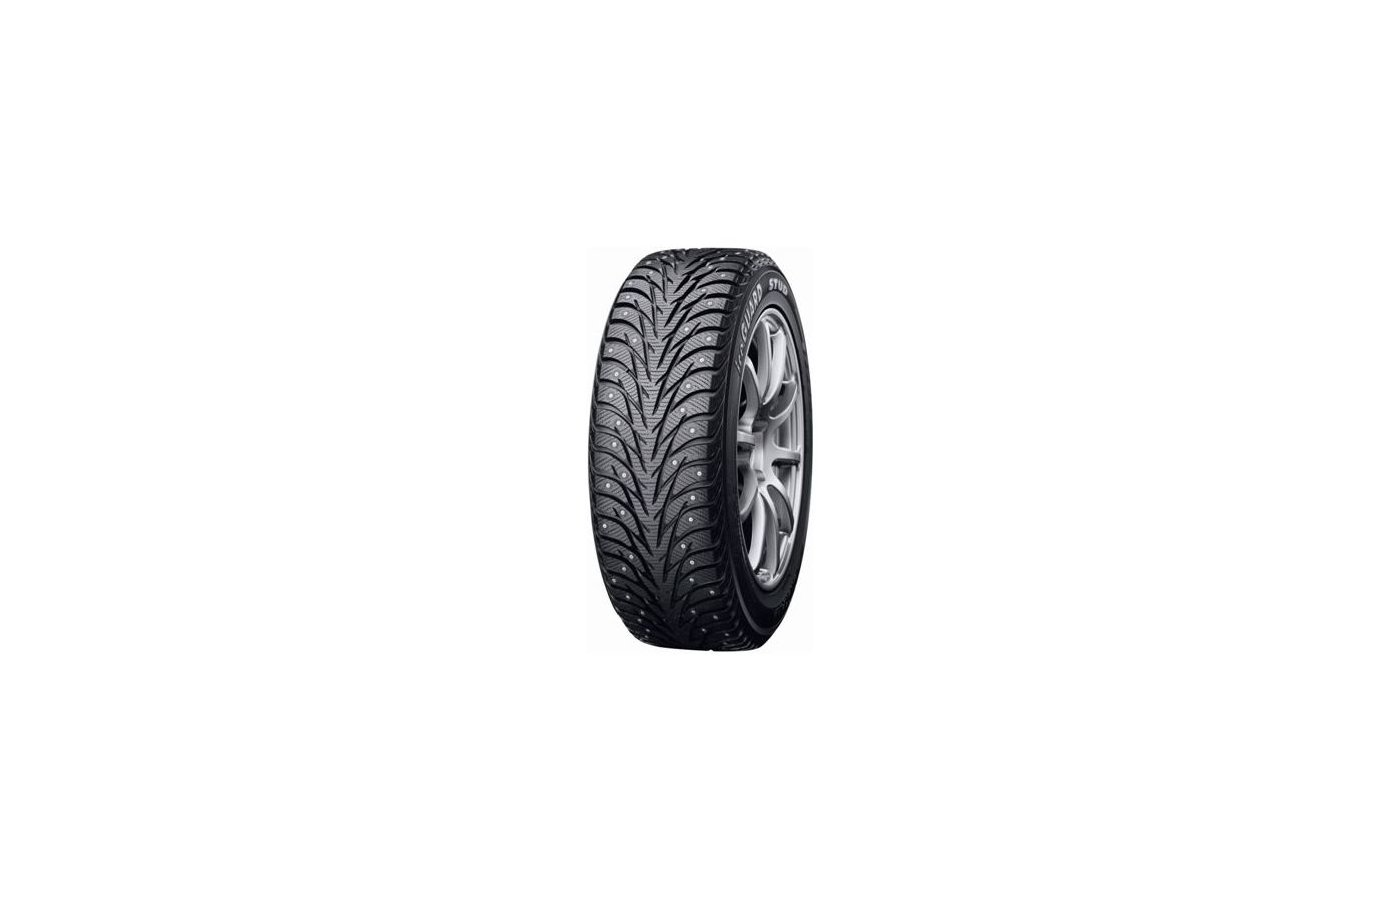 Шина Yokohama Ice Guard IG35 Plus 225/55 R16 TL 99T шип